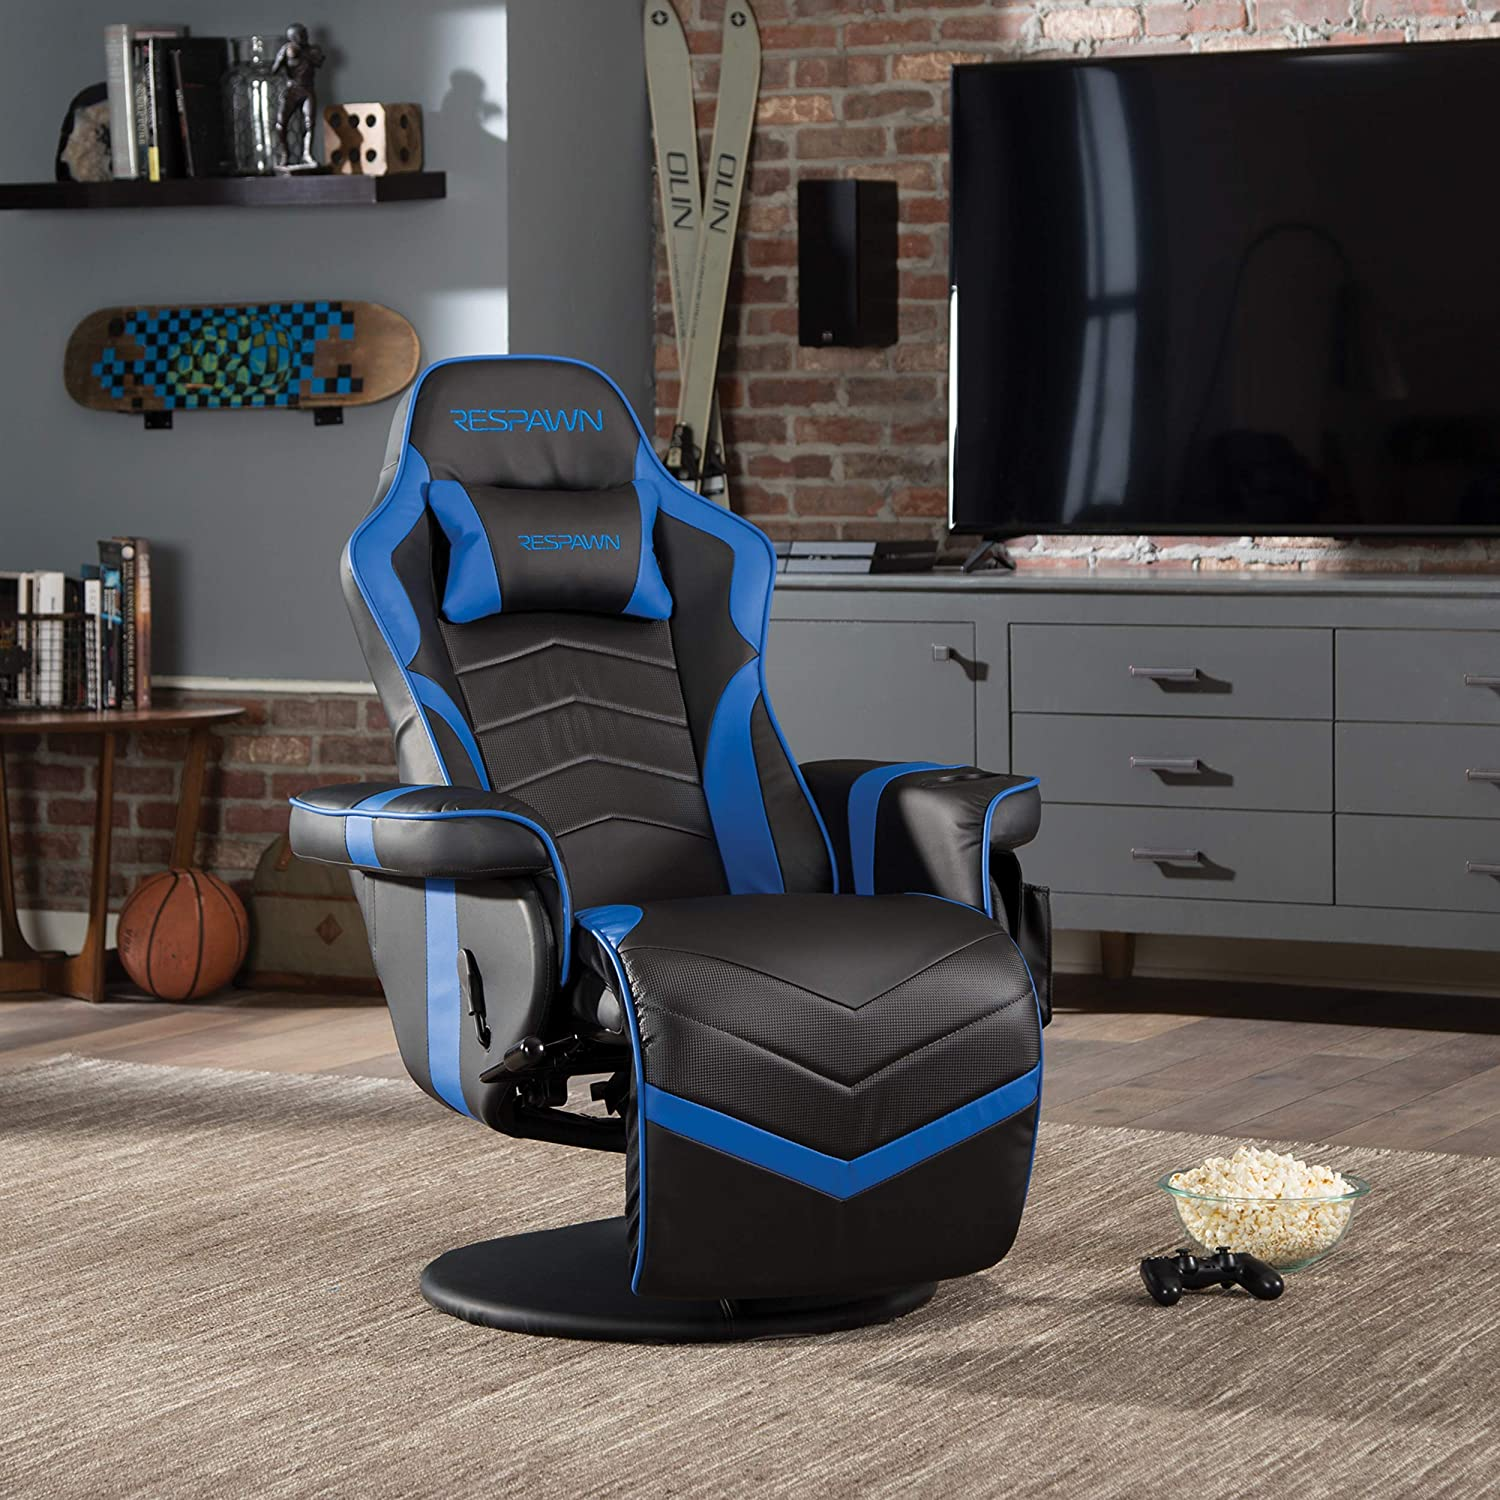 Best Gaming Chairs 2021 Most Comfortable Ergonomic Adjustable Rolling Stone